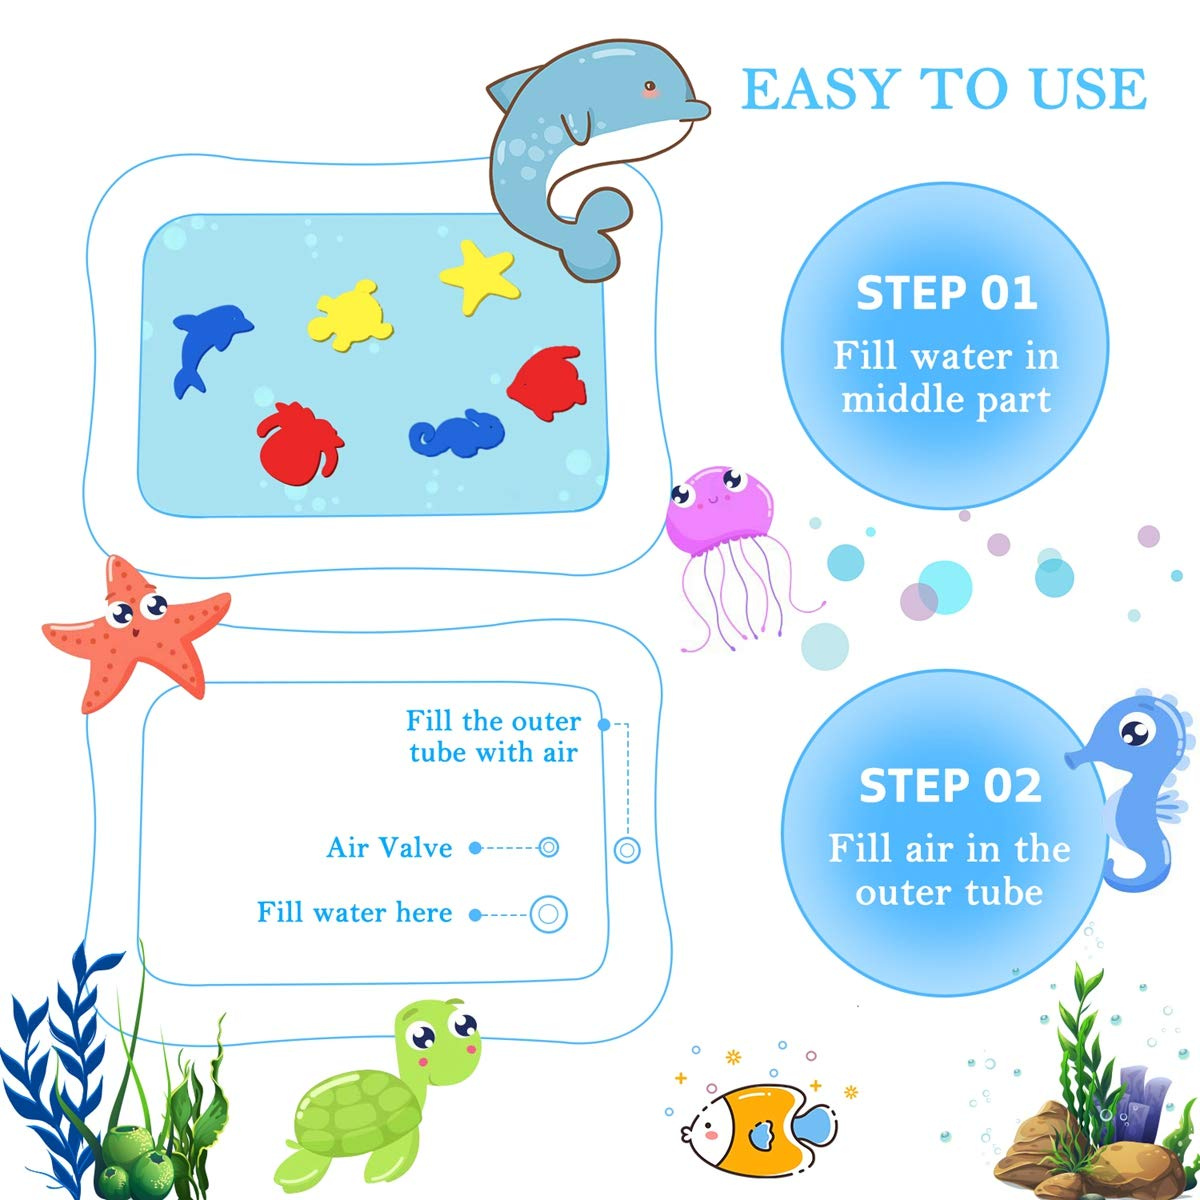 Inflatable Kids Mat Tummy Time Mat and Toddlers Child Development Accessory Fun Entertaining for Activity Center Early Development Tencoz Water Play Mat